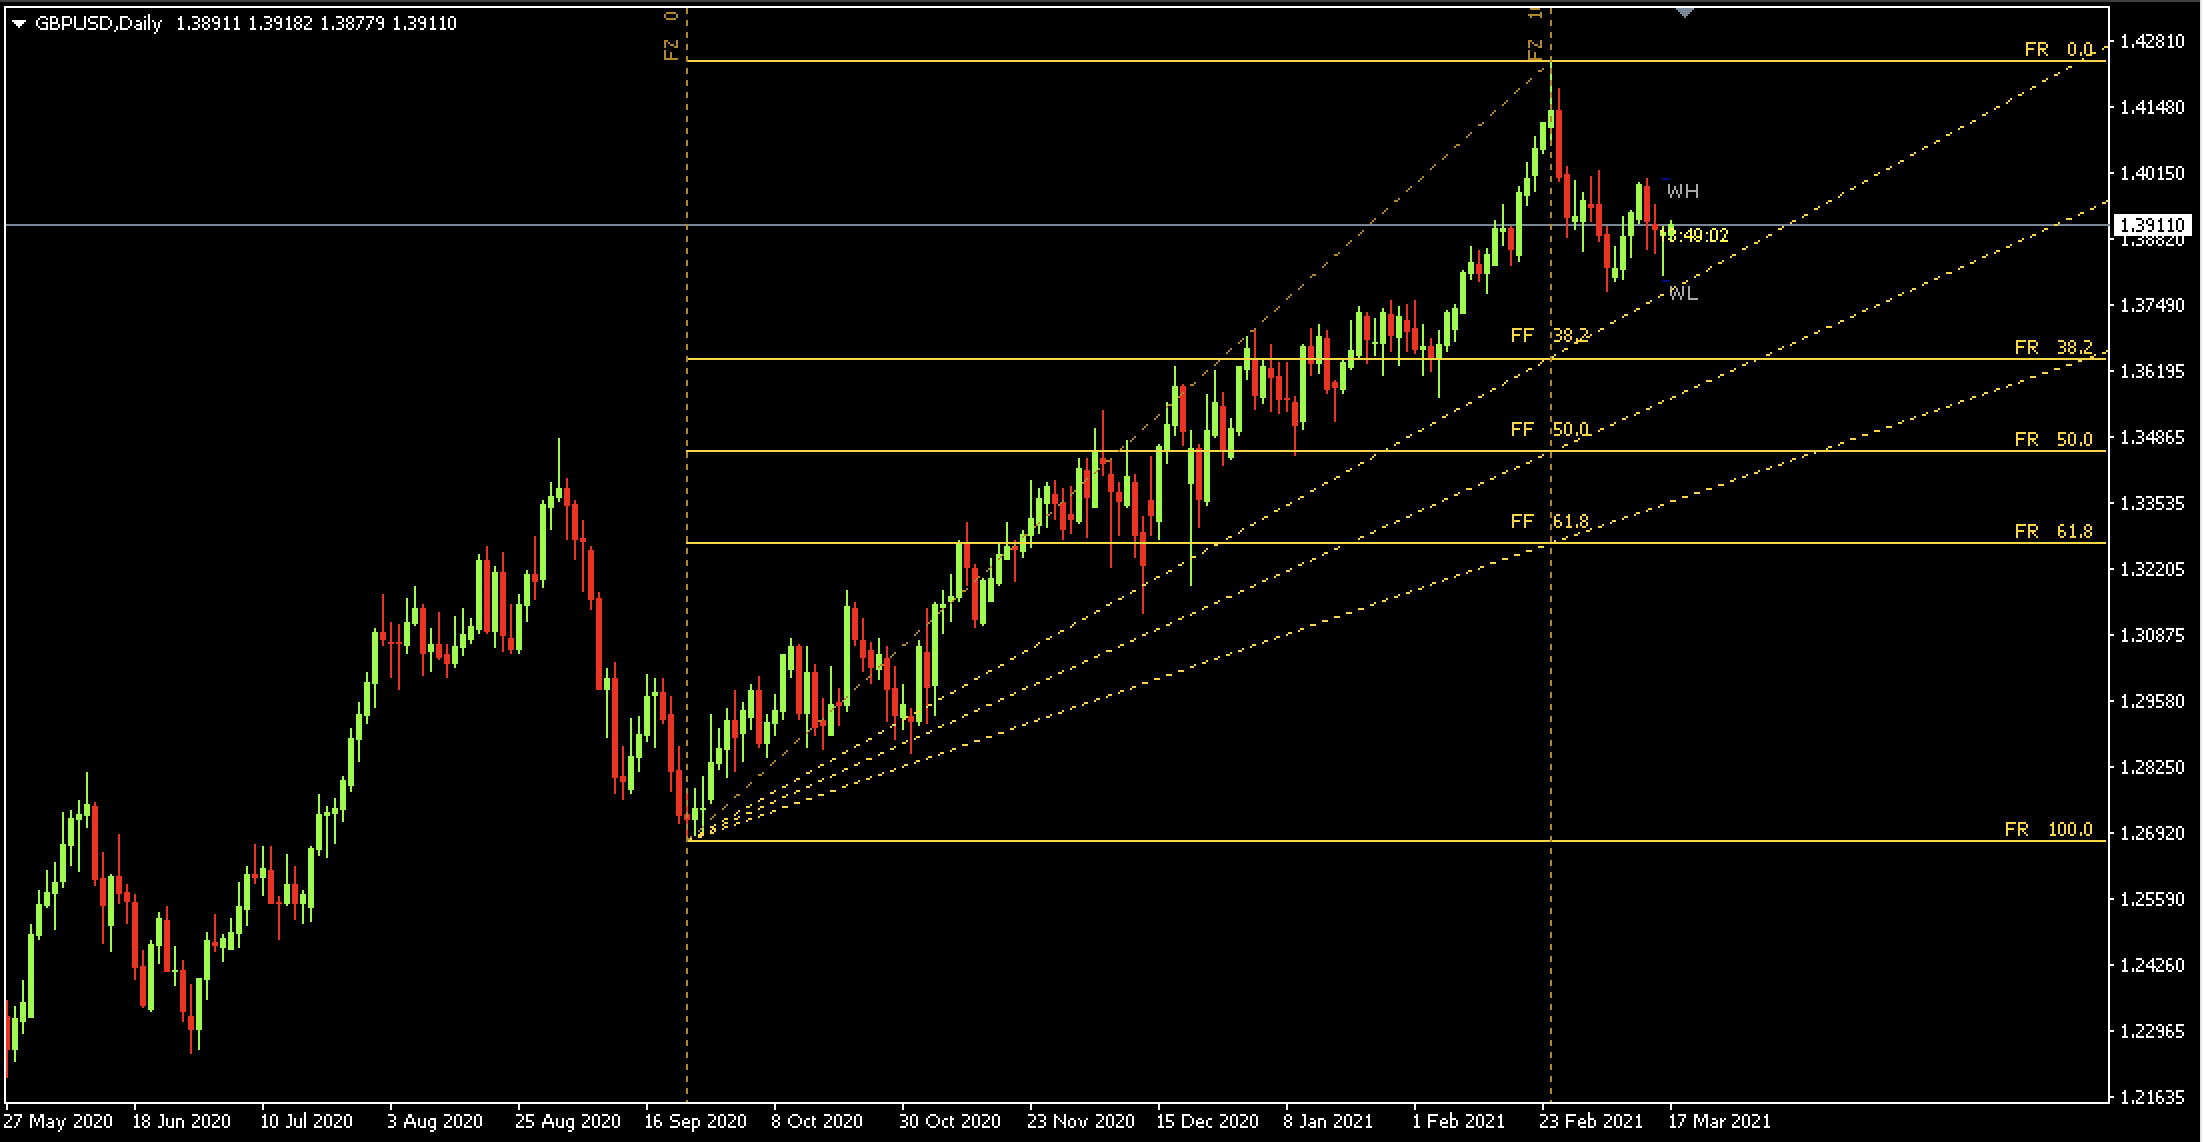 Auto Fibonacci Retracement Indicator on GBPUSD on the Daily Time frame Chart